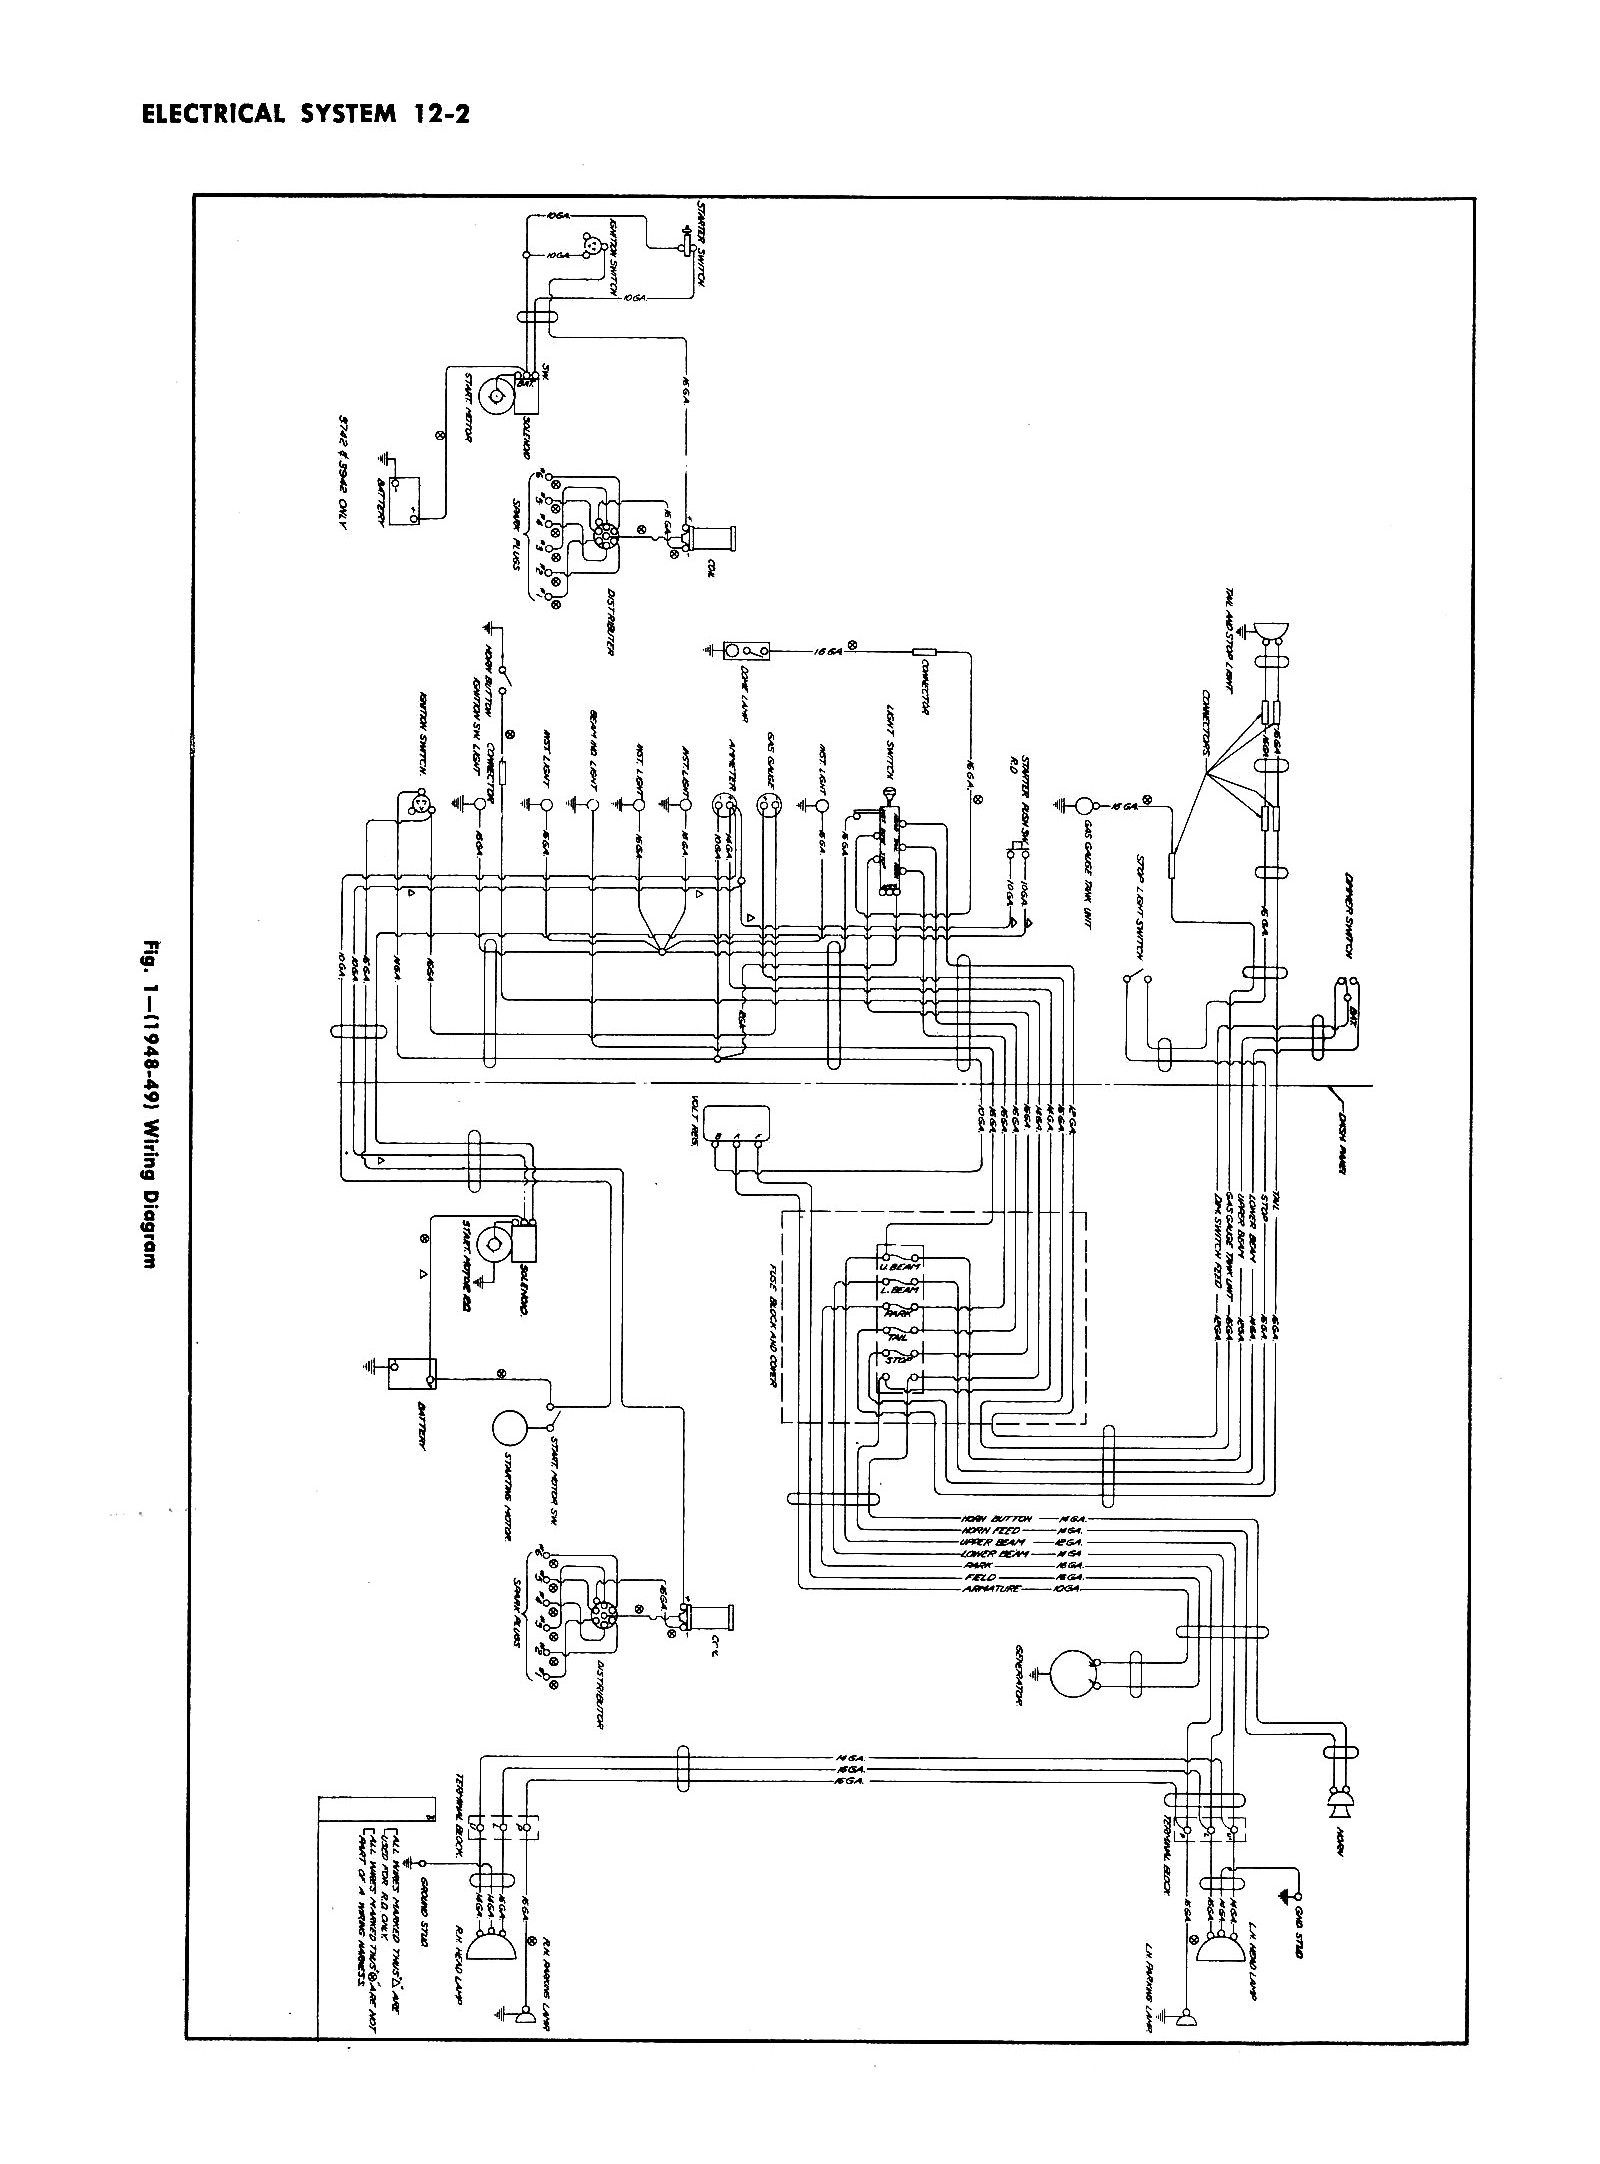 chevy wiring diagrams 1951 chevy truck wiring diagram 1951 chevy fleetline wiring diagram